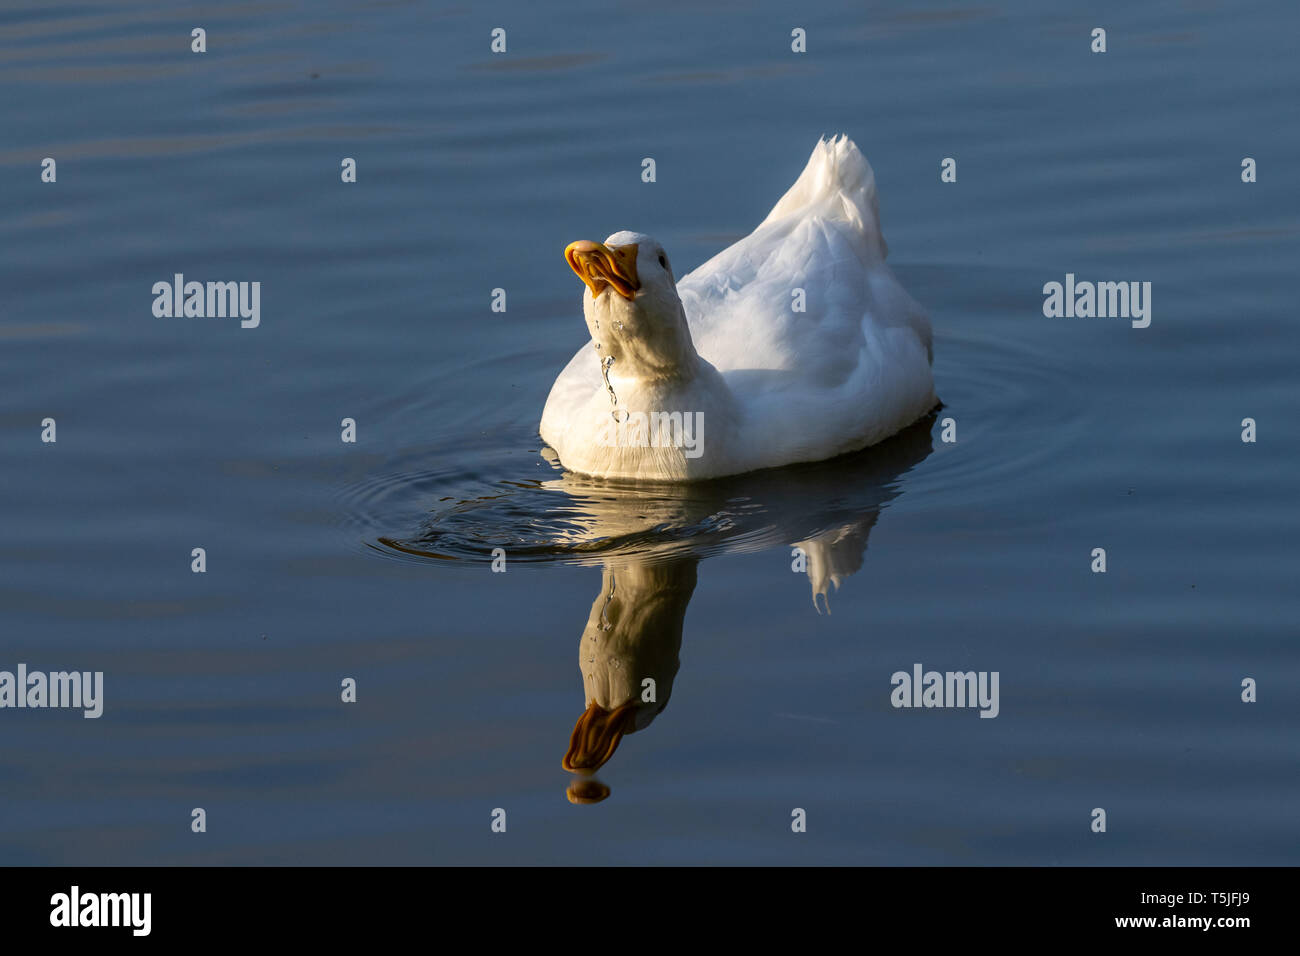 Pekin duck (also known as Long Island or Aylesbury duck) on a still calm lake with reflection in the water - Stock Image